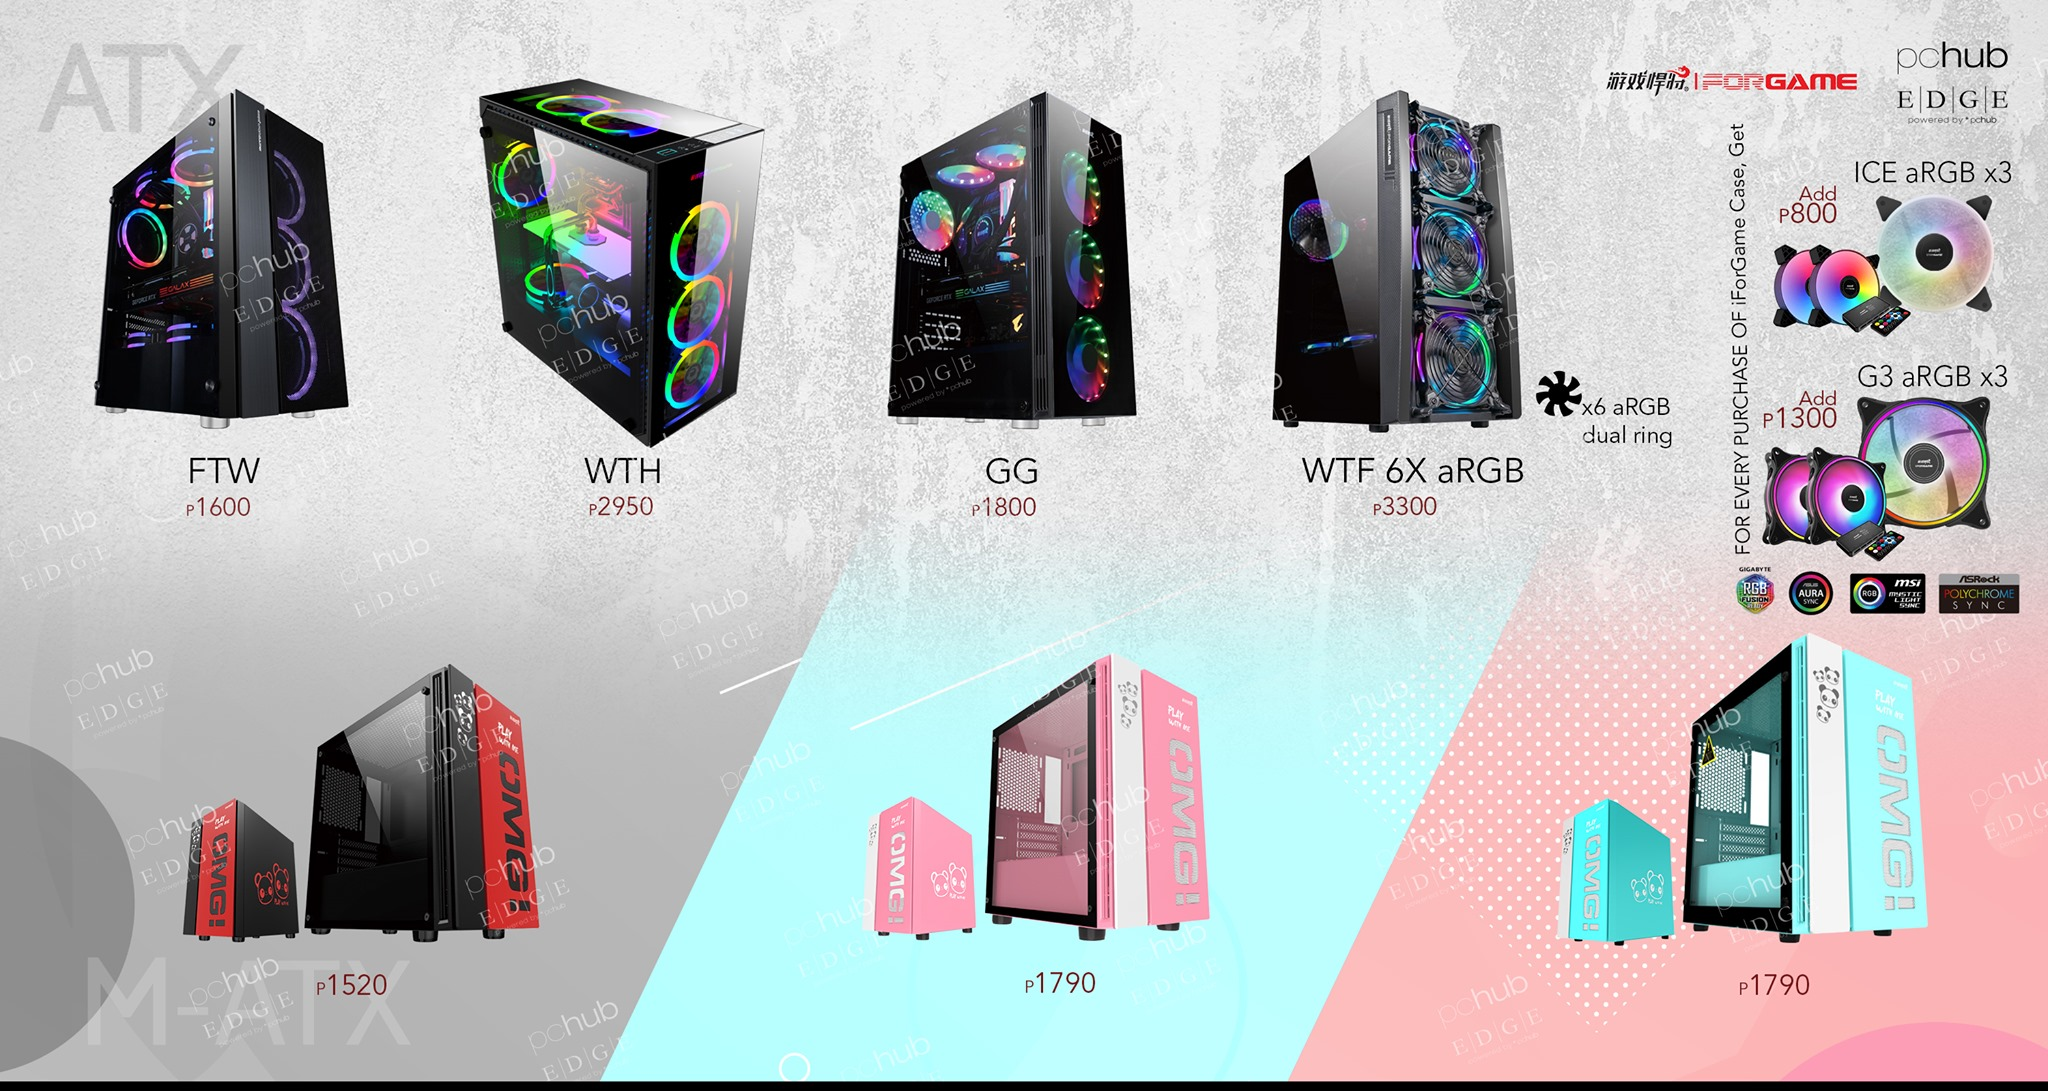 20k online learning pc build guide case - 20k gaming pc build guide case